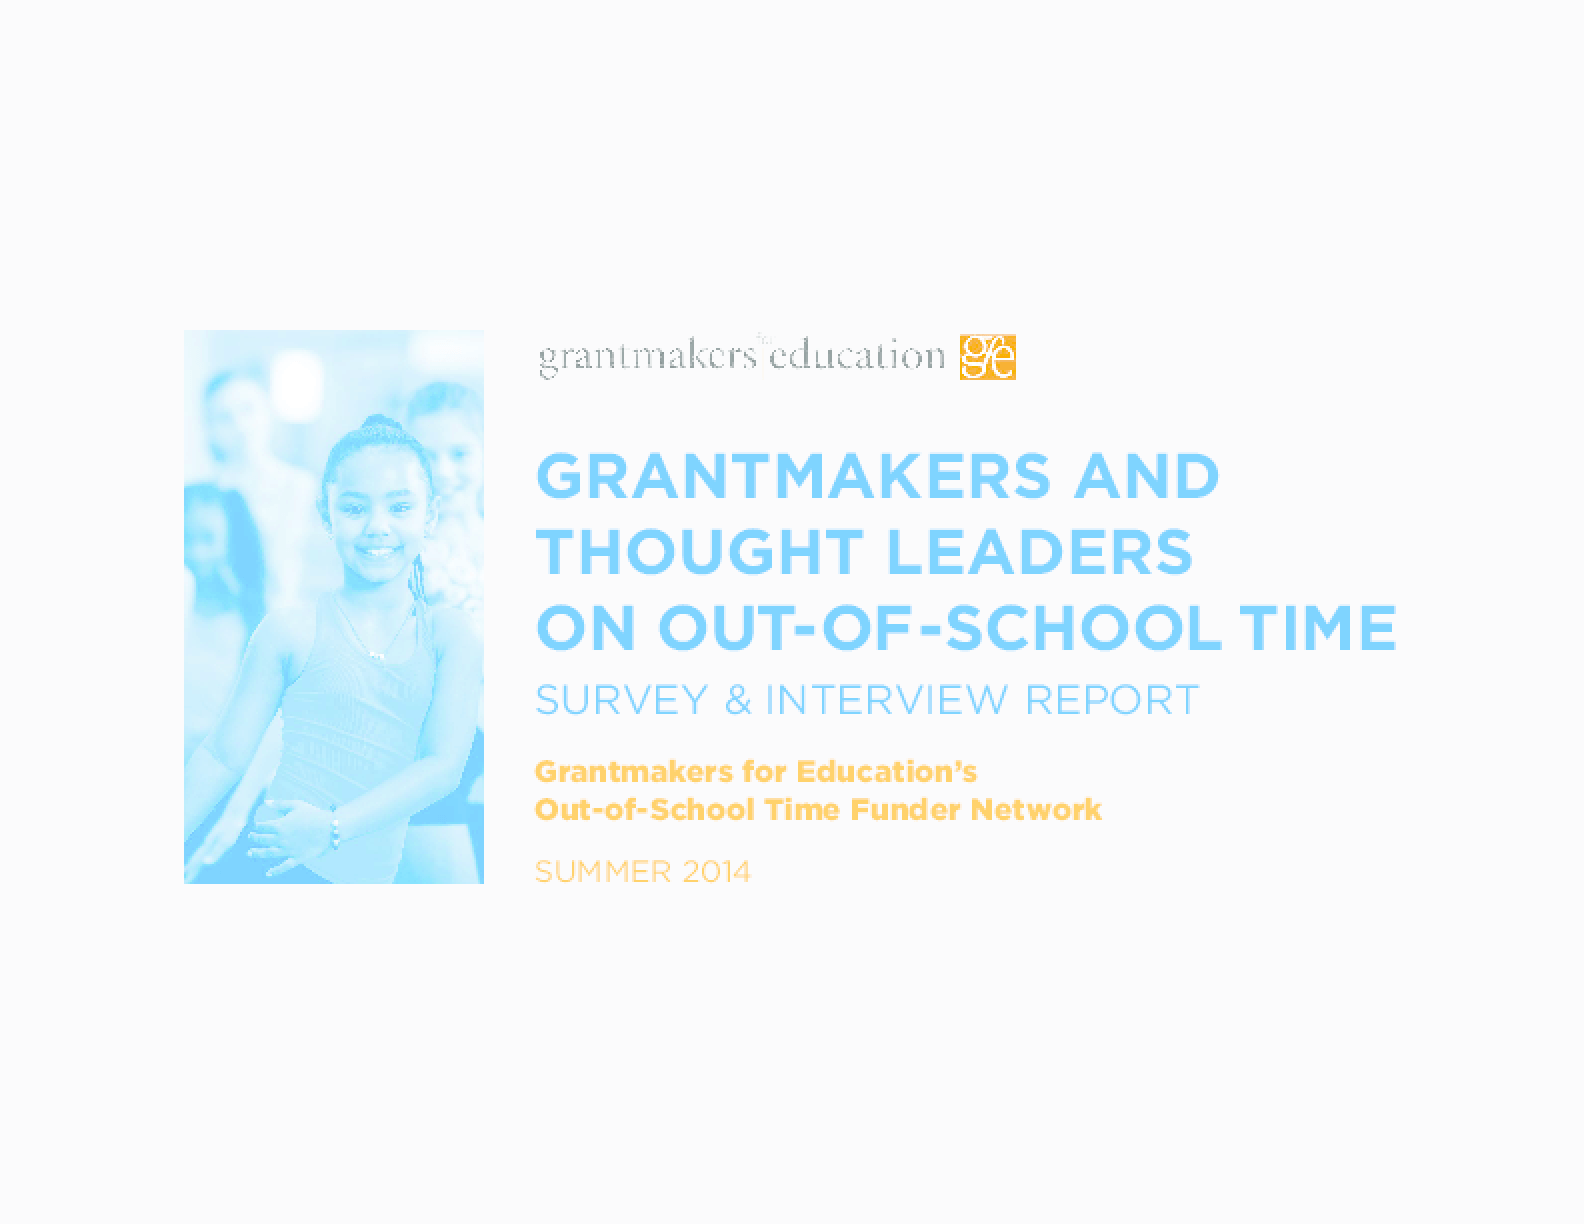 Grantmakers and Thought Leaders on Out-of-School Time: Survey & Interview Report